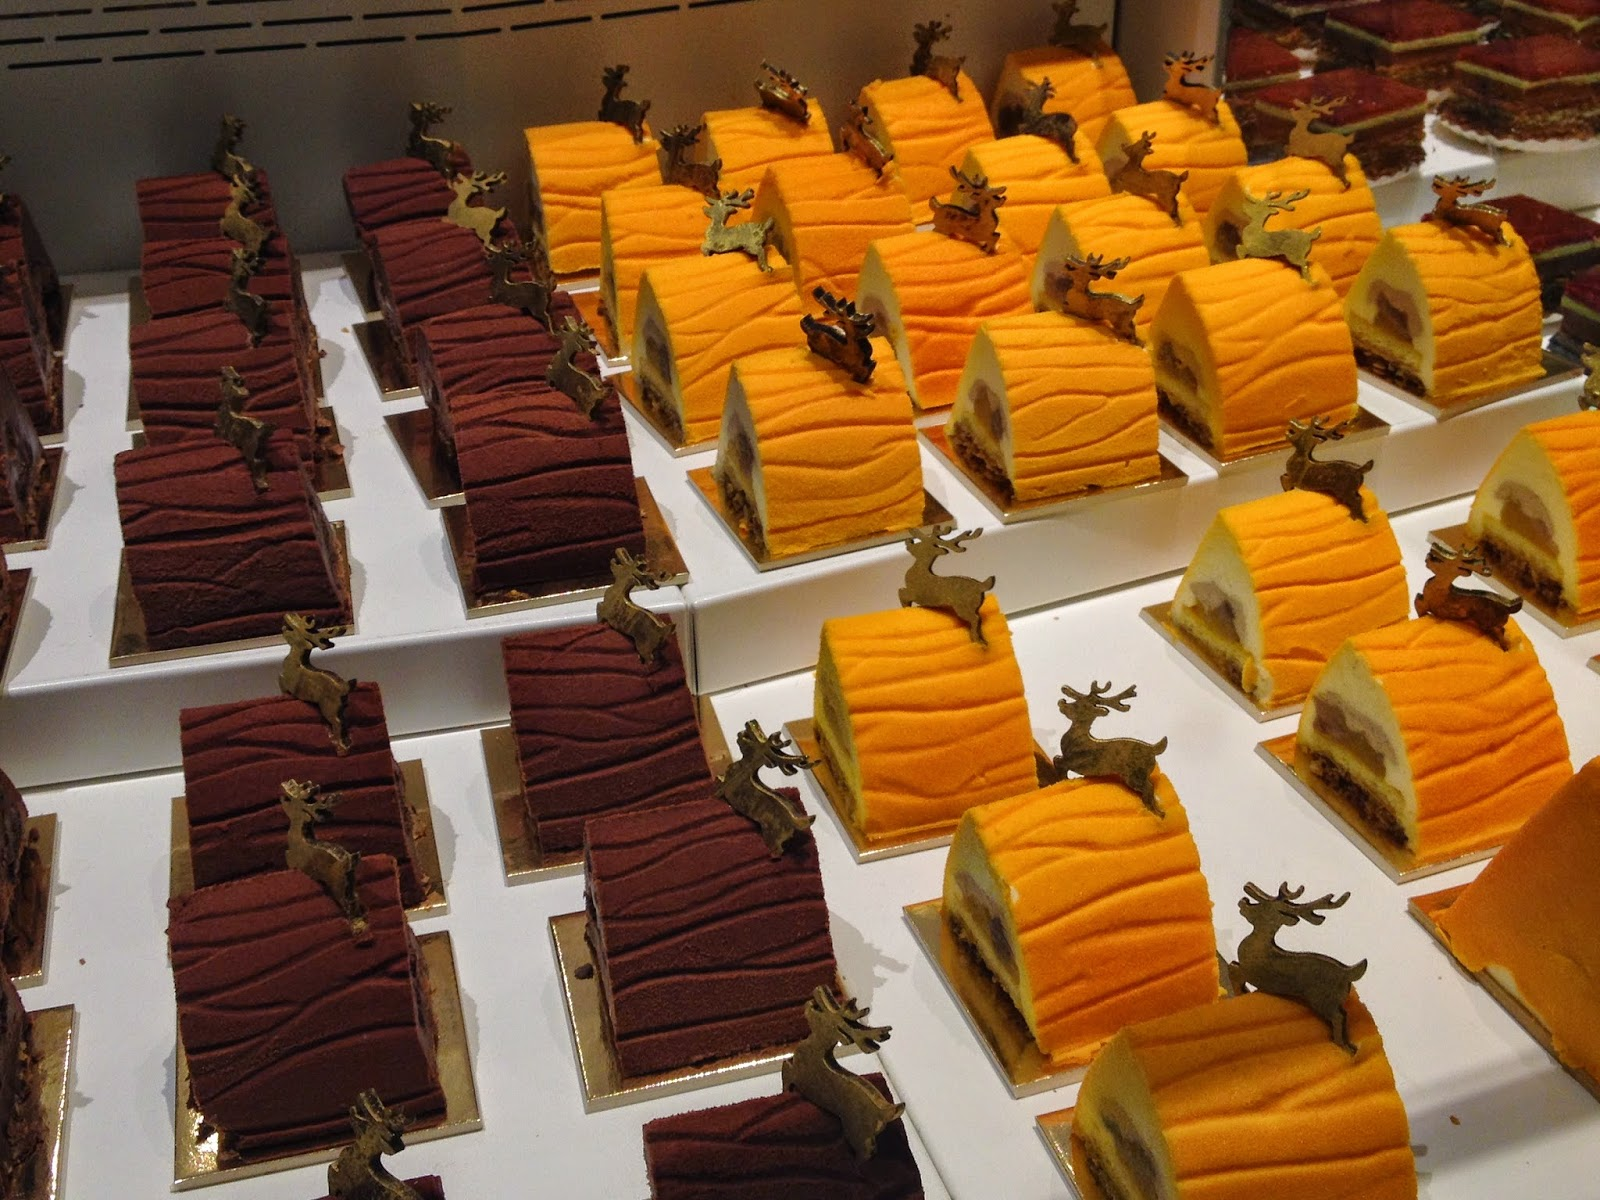 Bûches de Noël at La Grande Epicerie de Paris